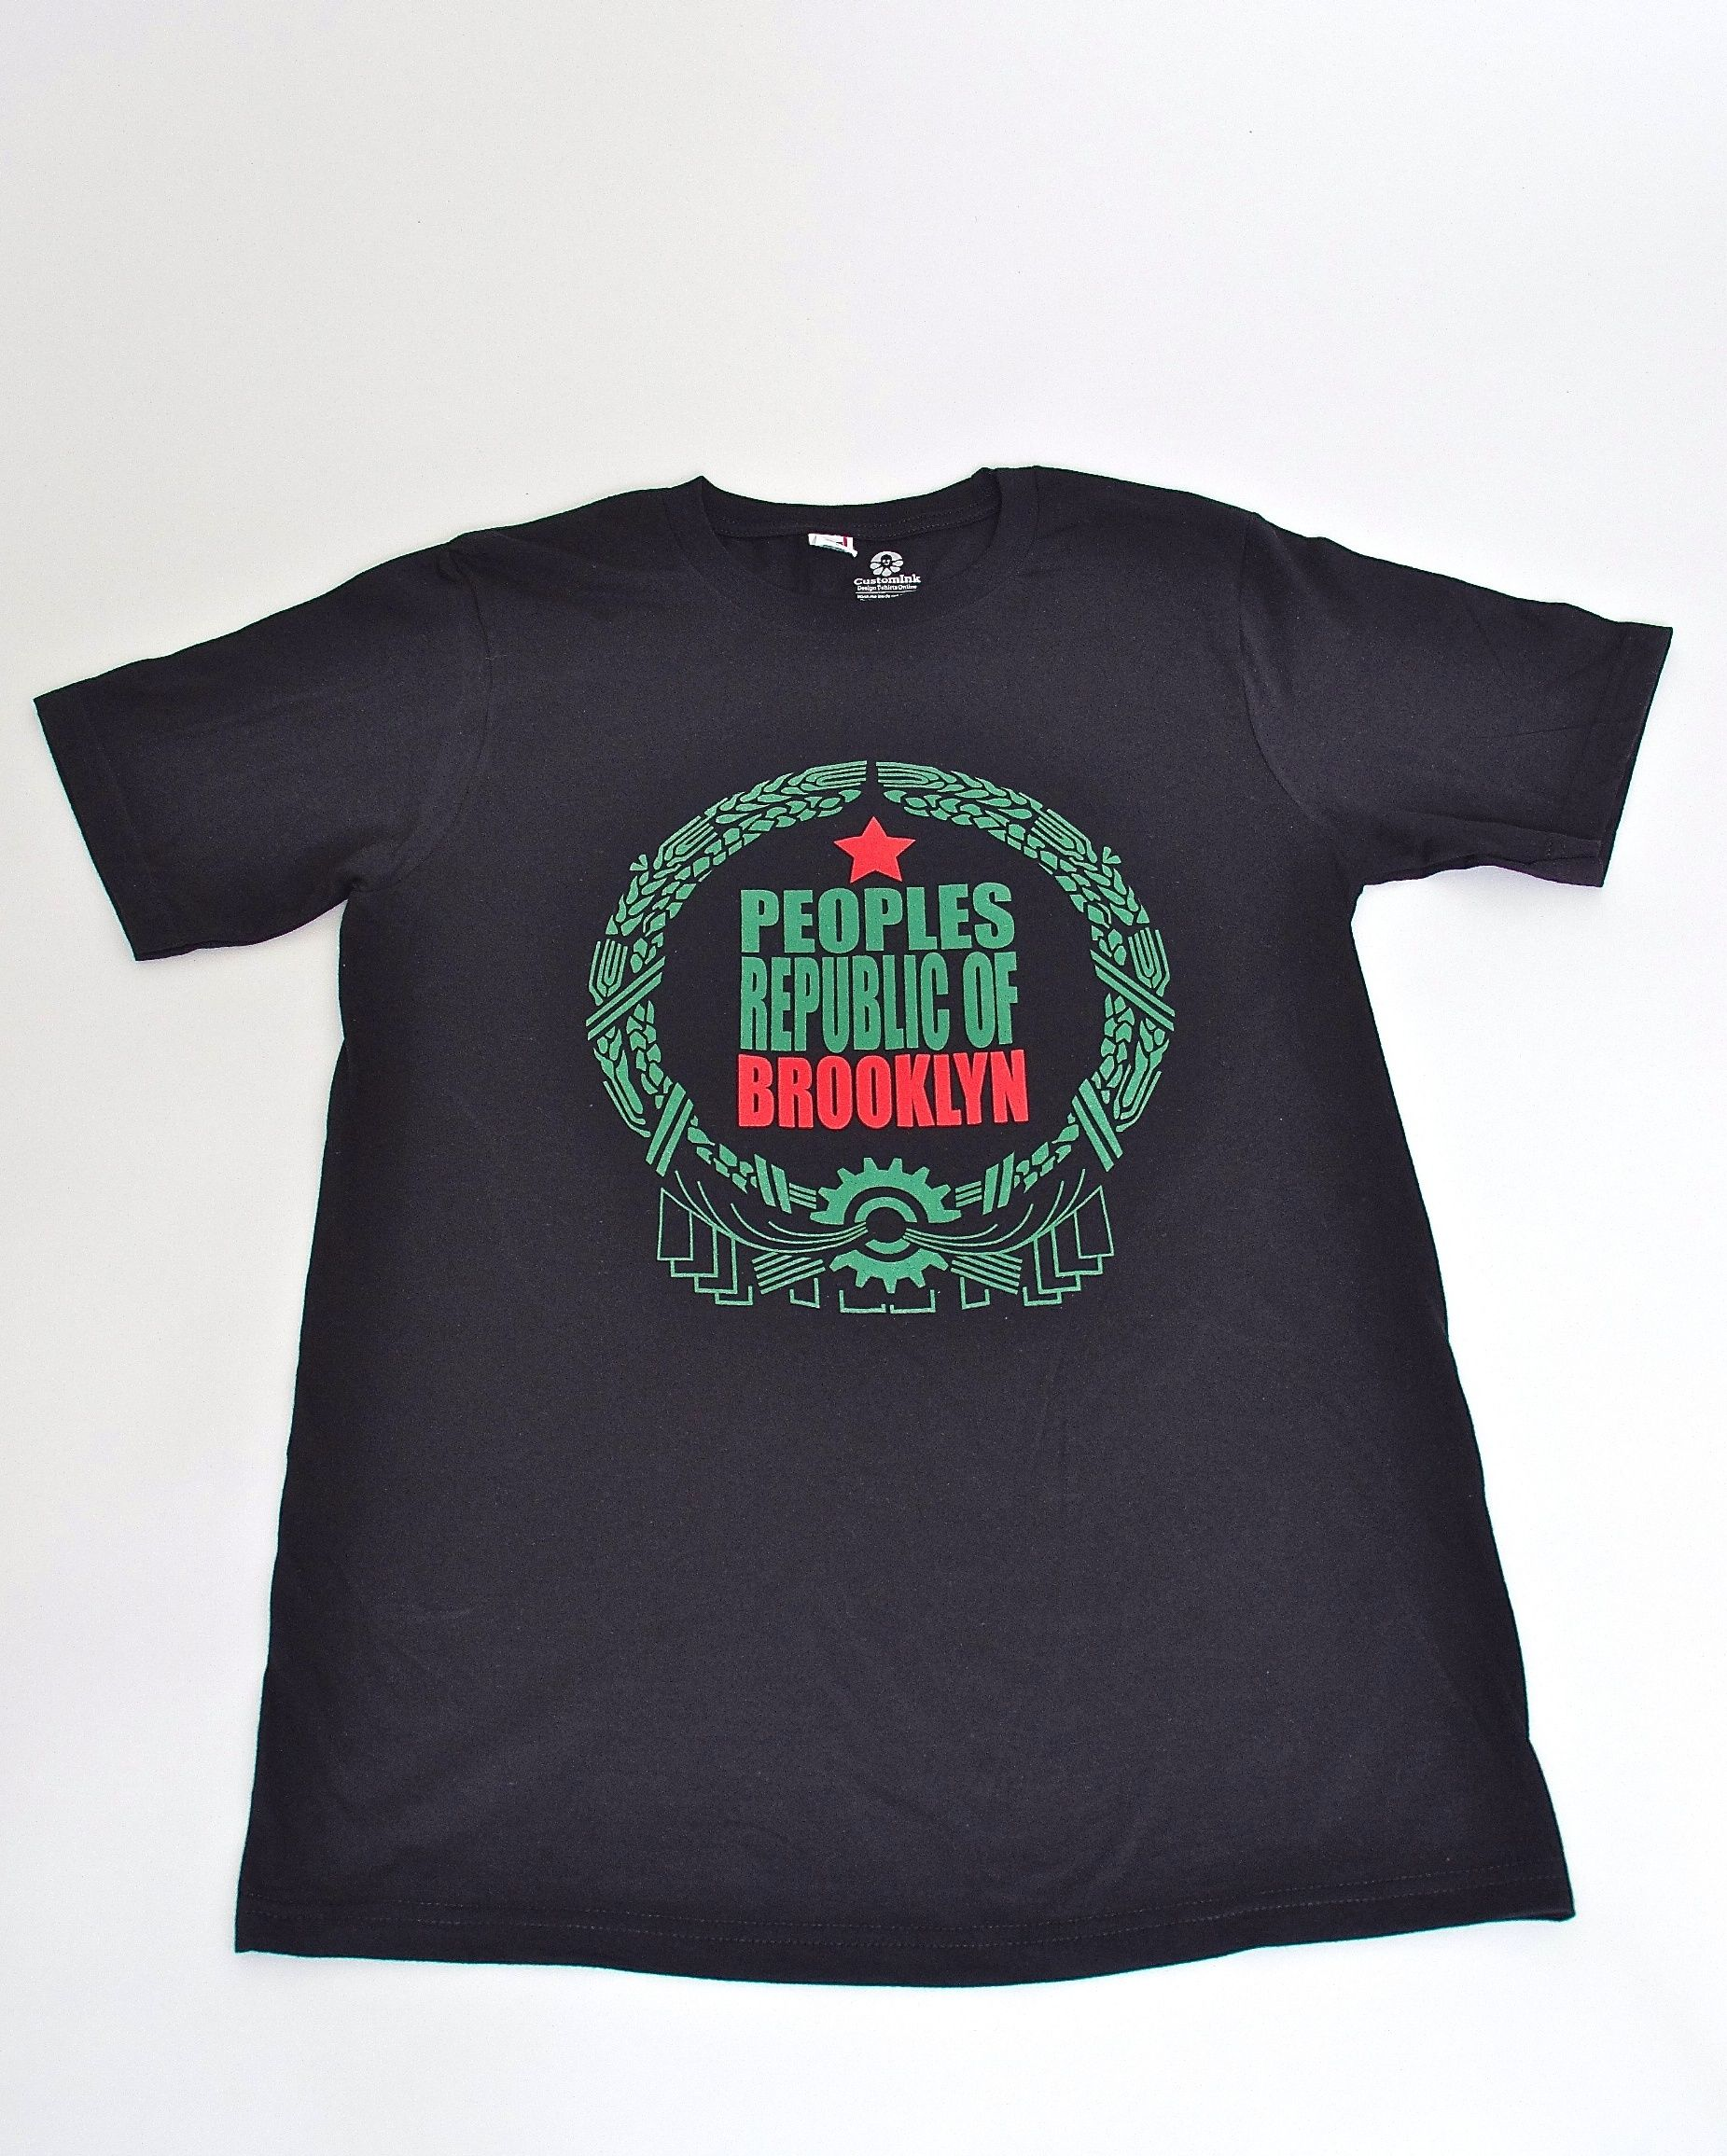 a159ce78a A MoCADA Bestseller//People's Republic of Brooklyn T-Shirt//$22 ...